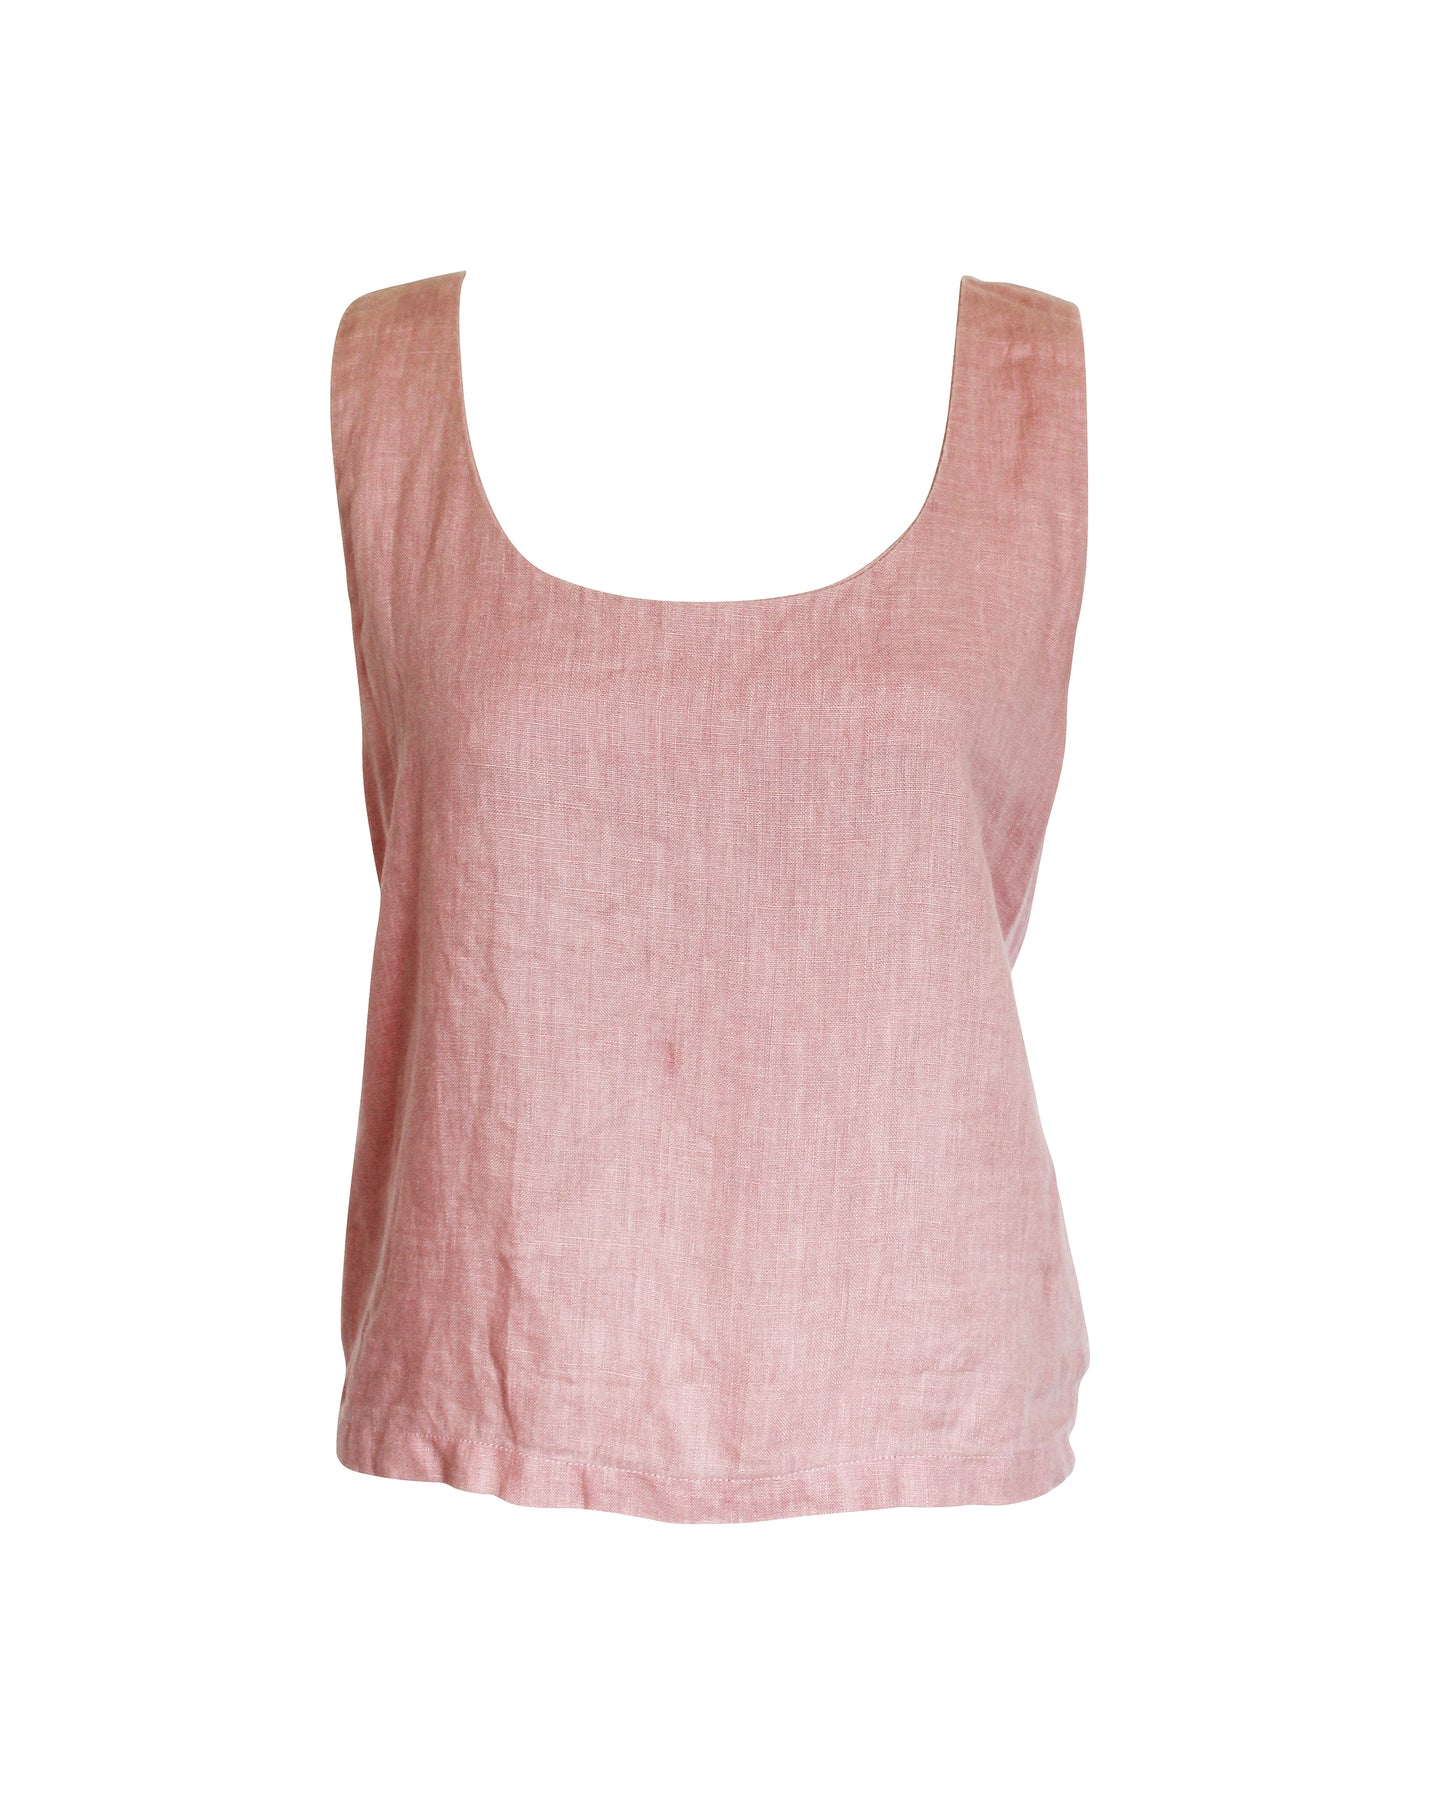 The Top in Blush